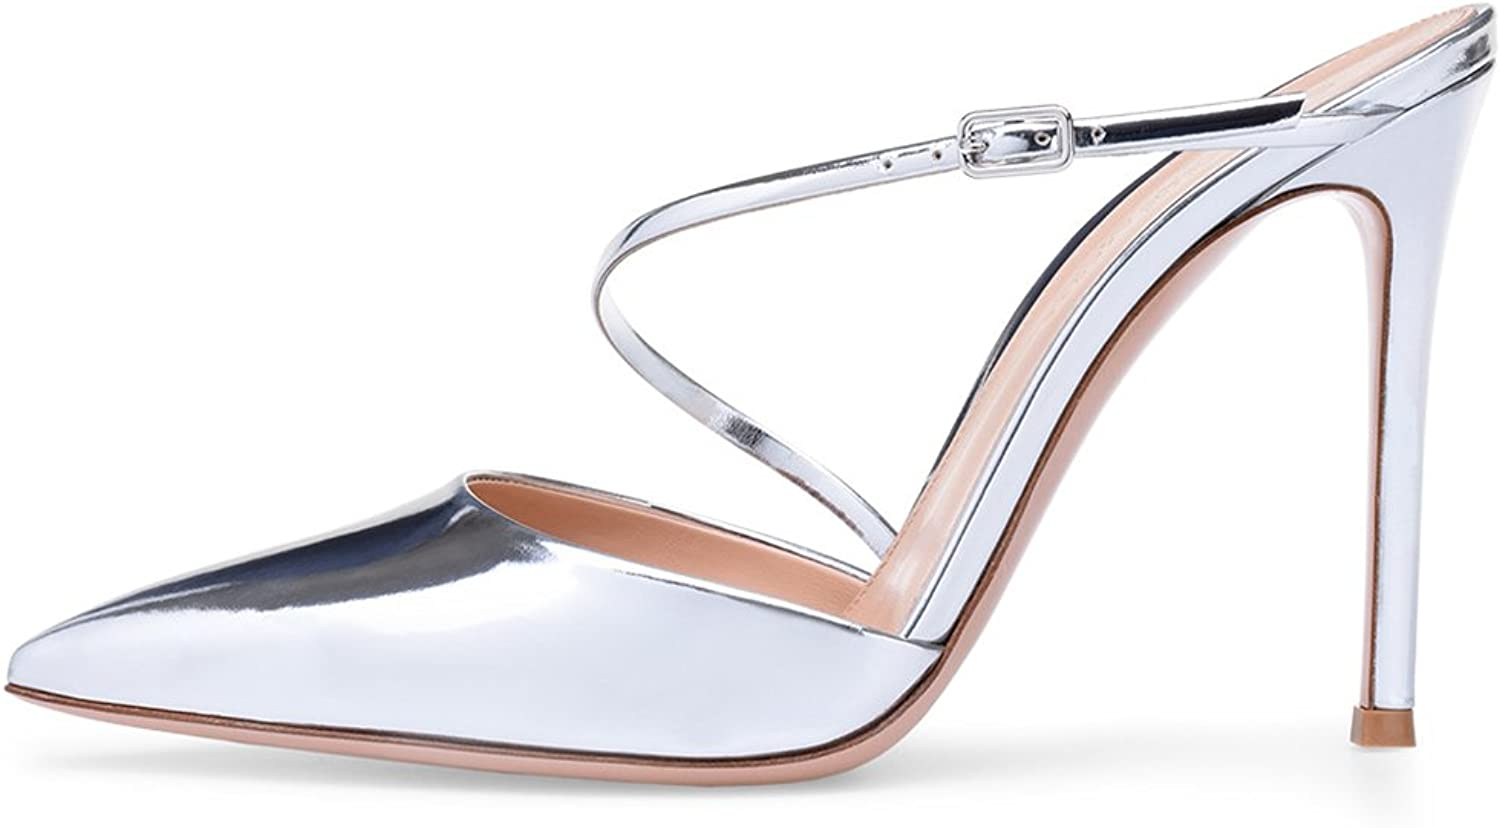 Women's Silver Pointed Muller shoes High Heel Sandals Fashion shoes Ankle Strap (Heel Height  11-13cm)